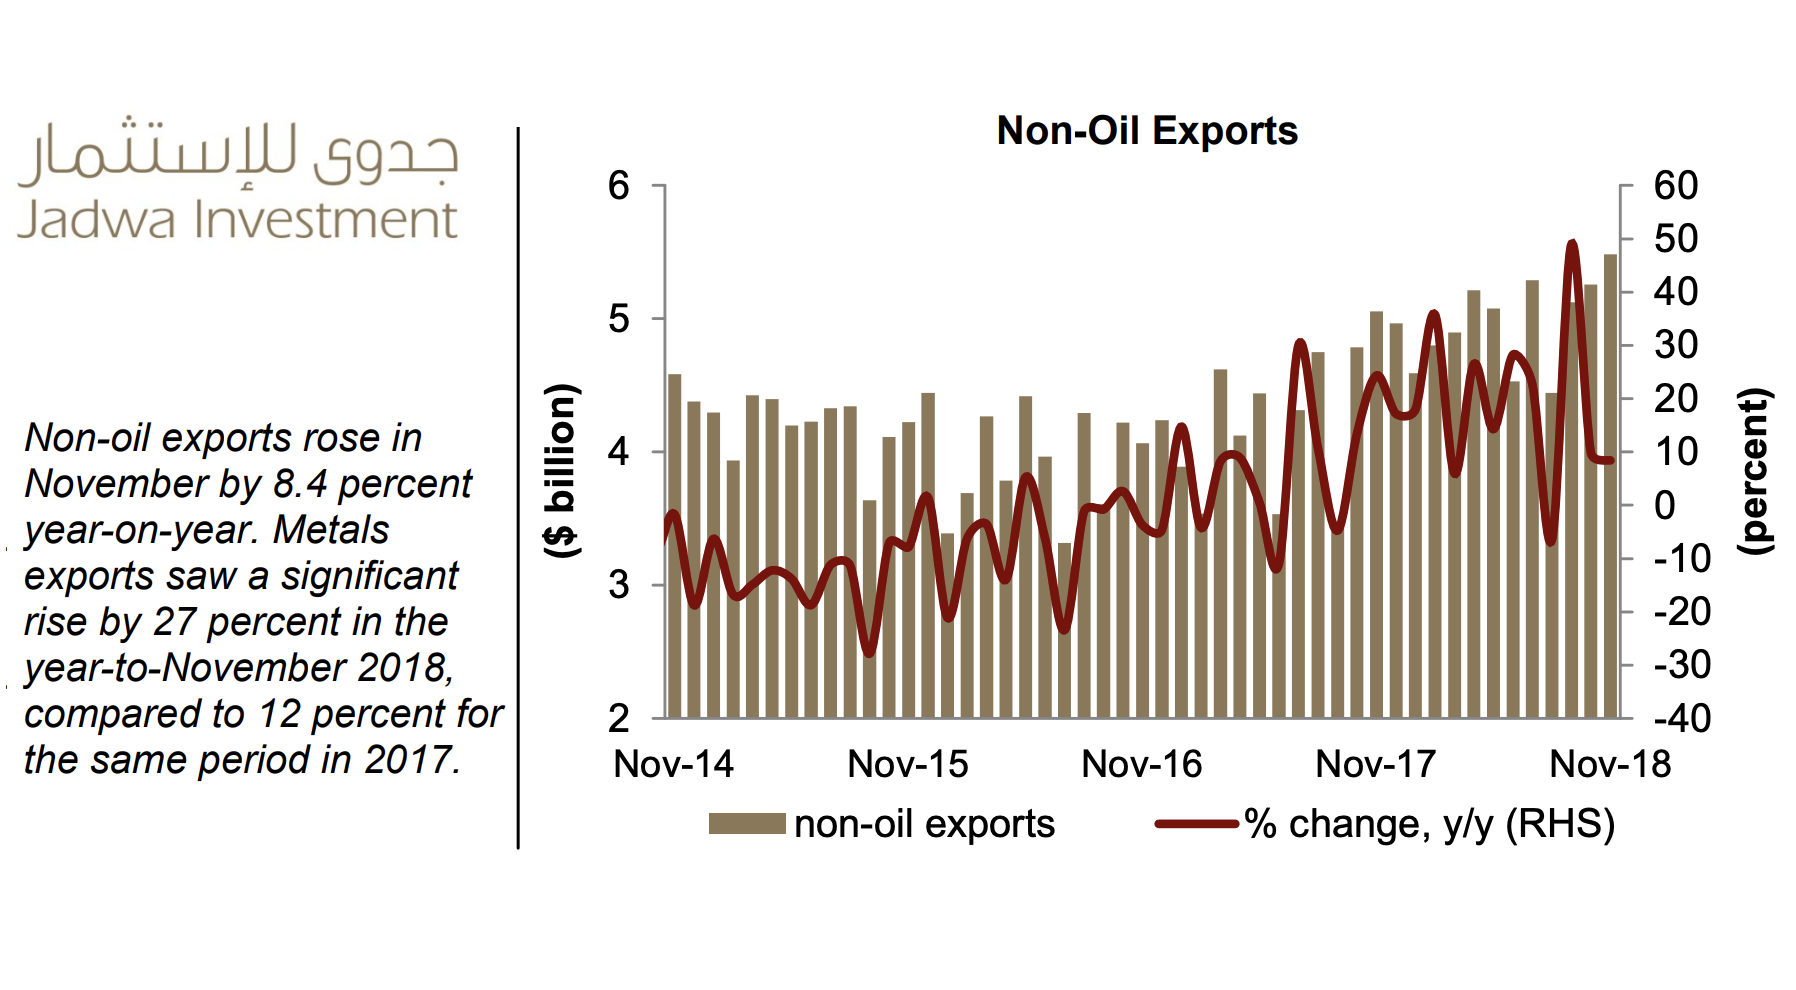 December Economic Data Shows Slight Cooling but Non-Oil Exports Grow